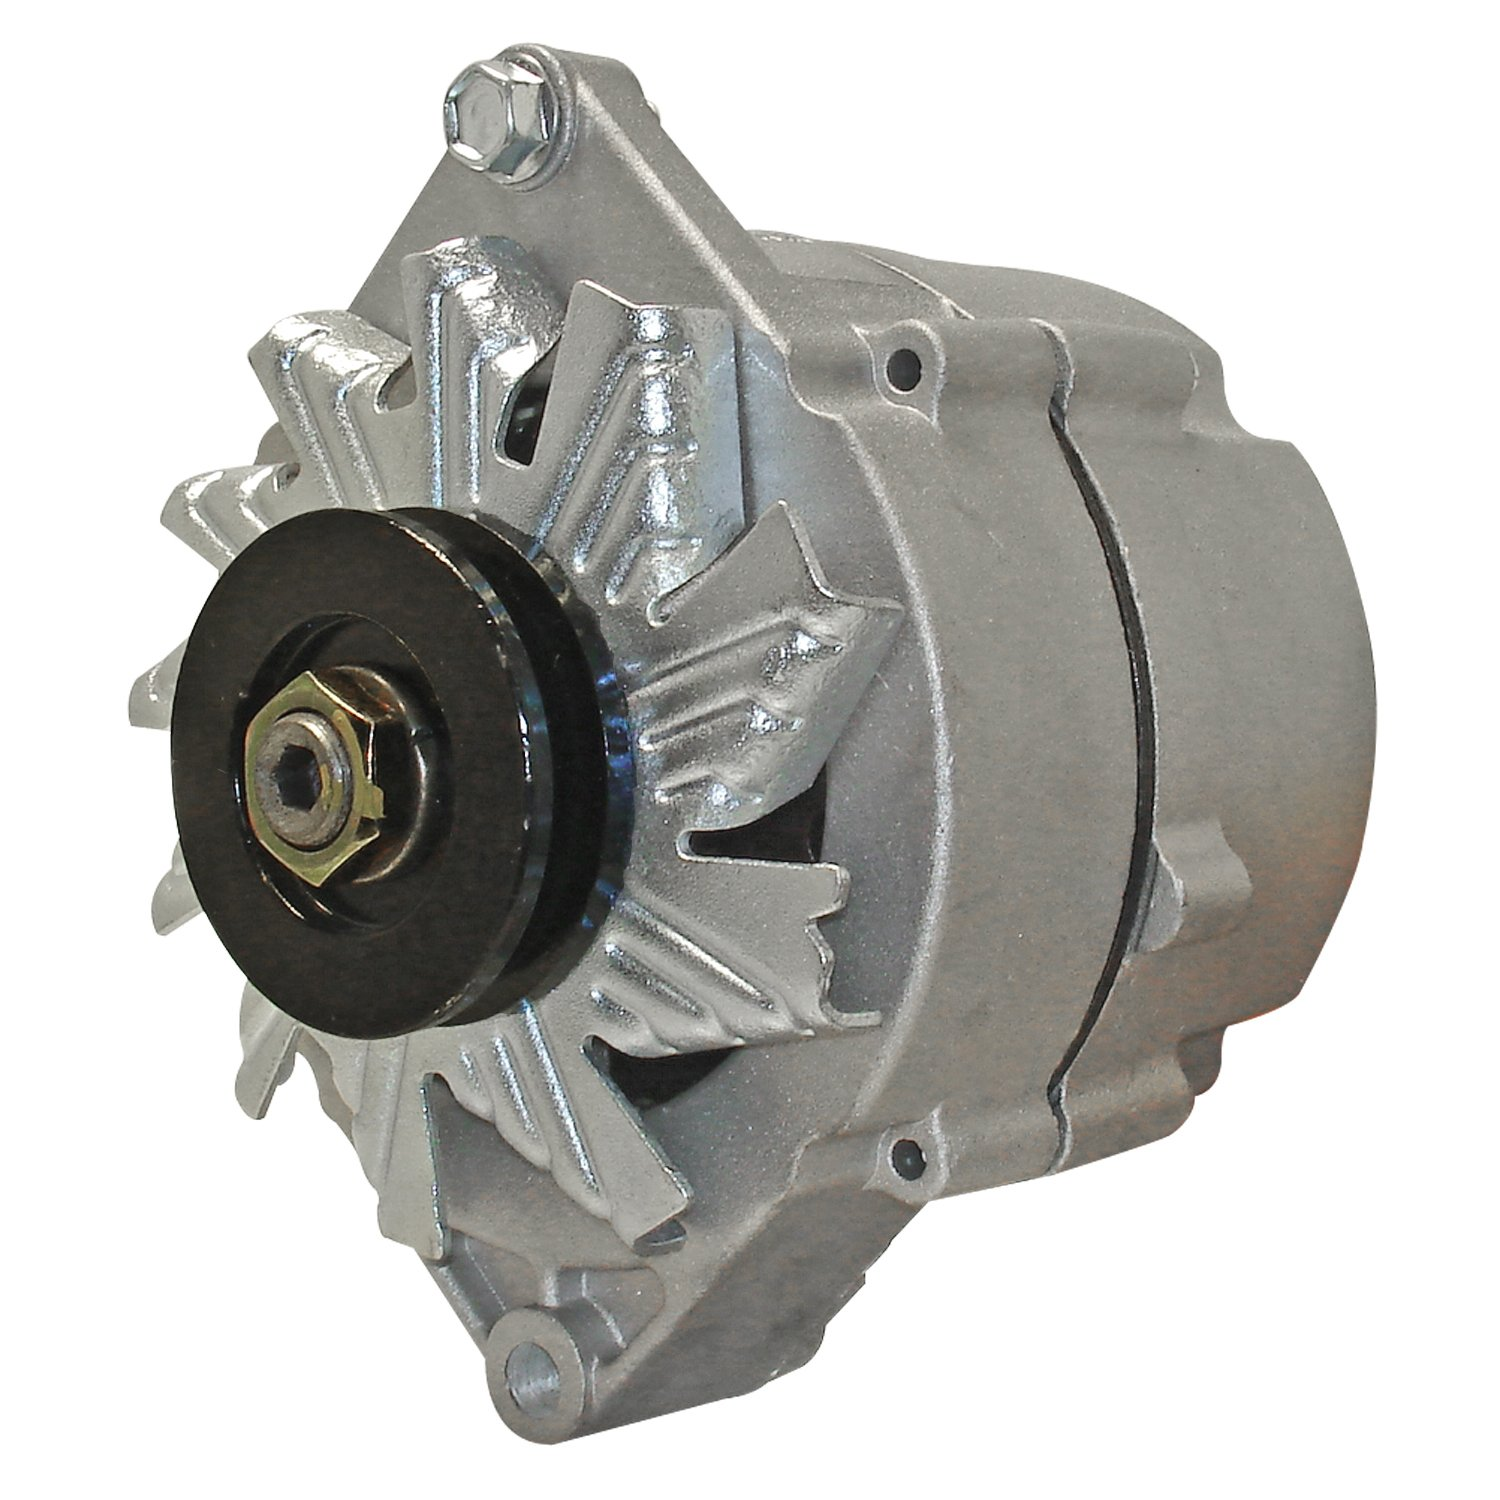 Acdelco 334 2110 Professional Alternator Remanufactured How Does Old Single Wire Delco Work Automotive